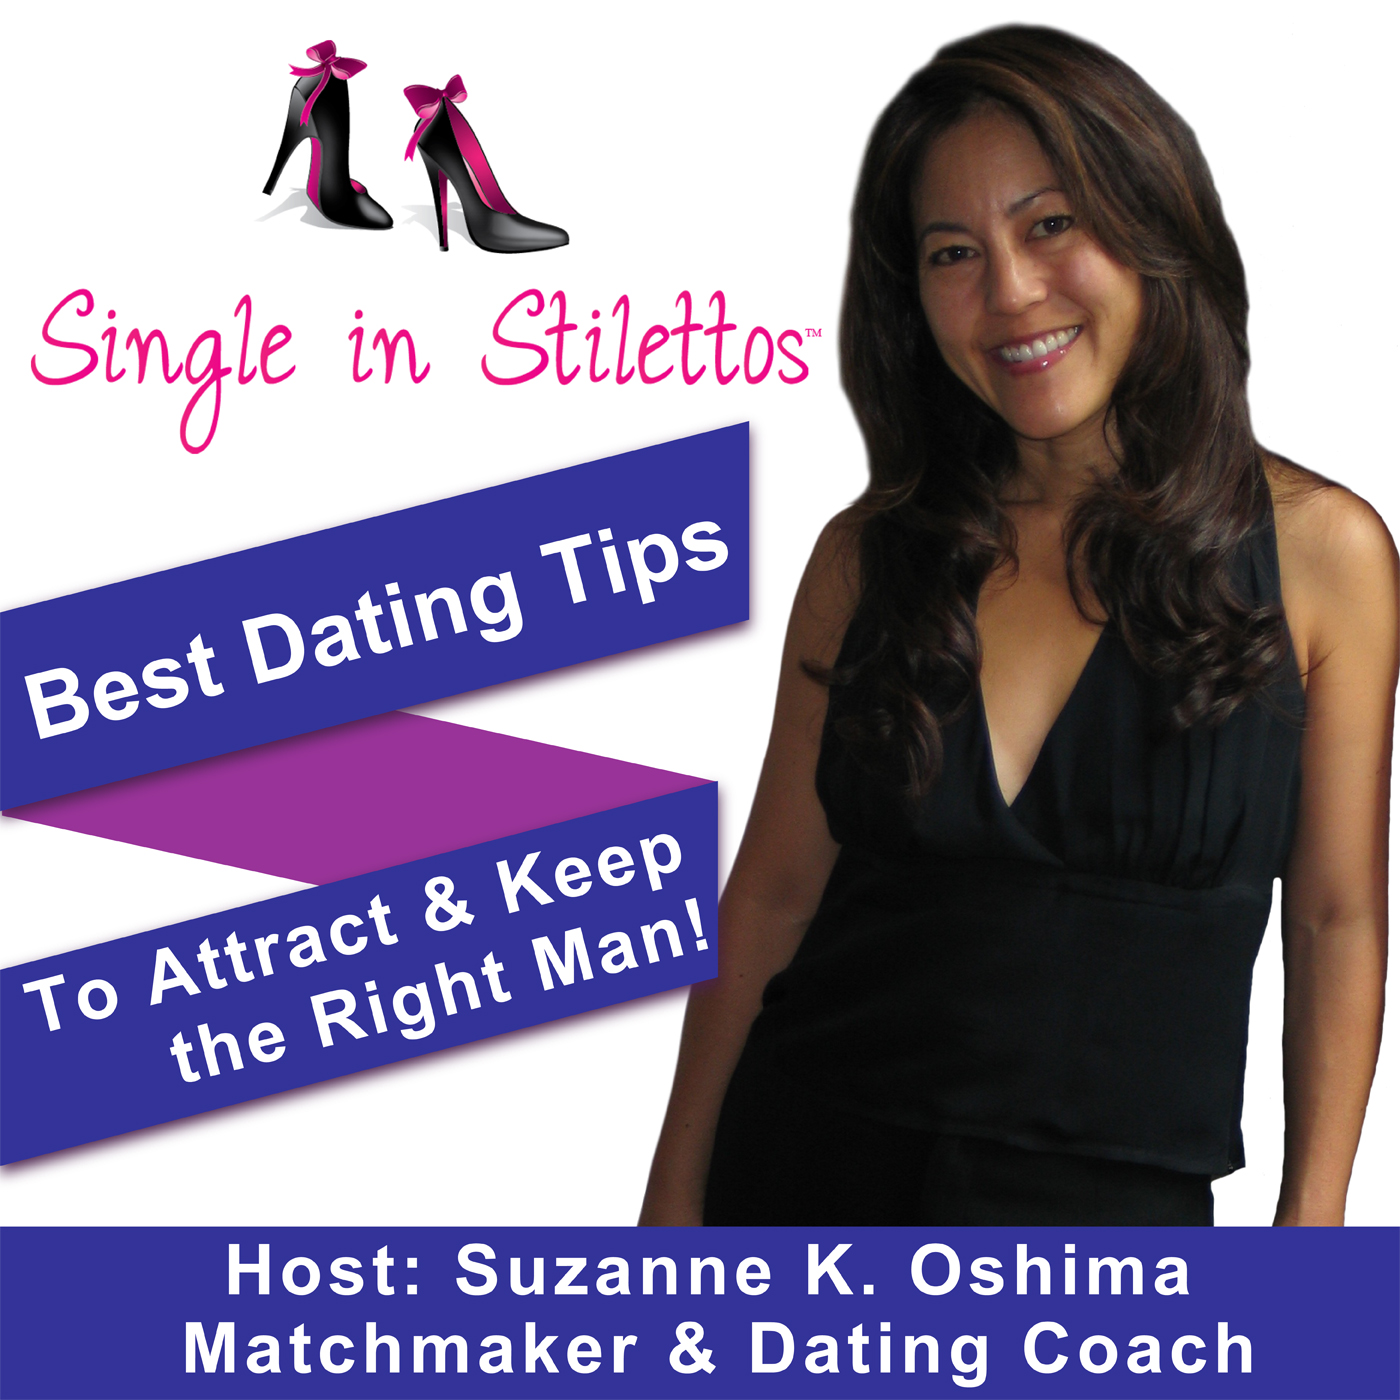 Online Dating for Over 40 8 Best Tips and Advices in - DatingCritic